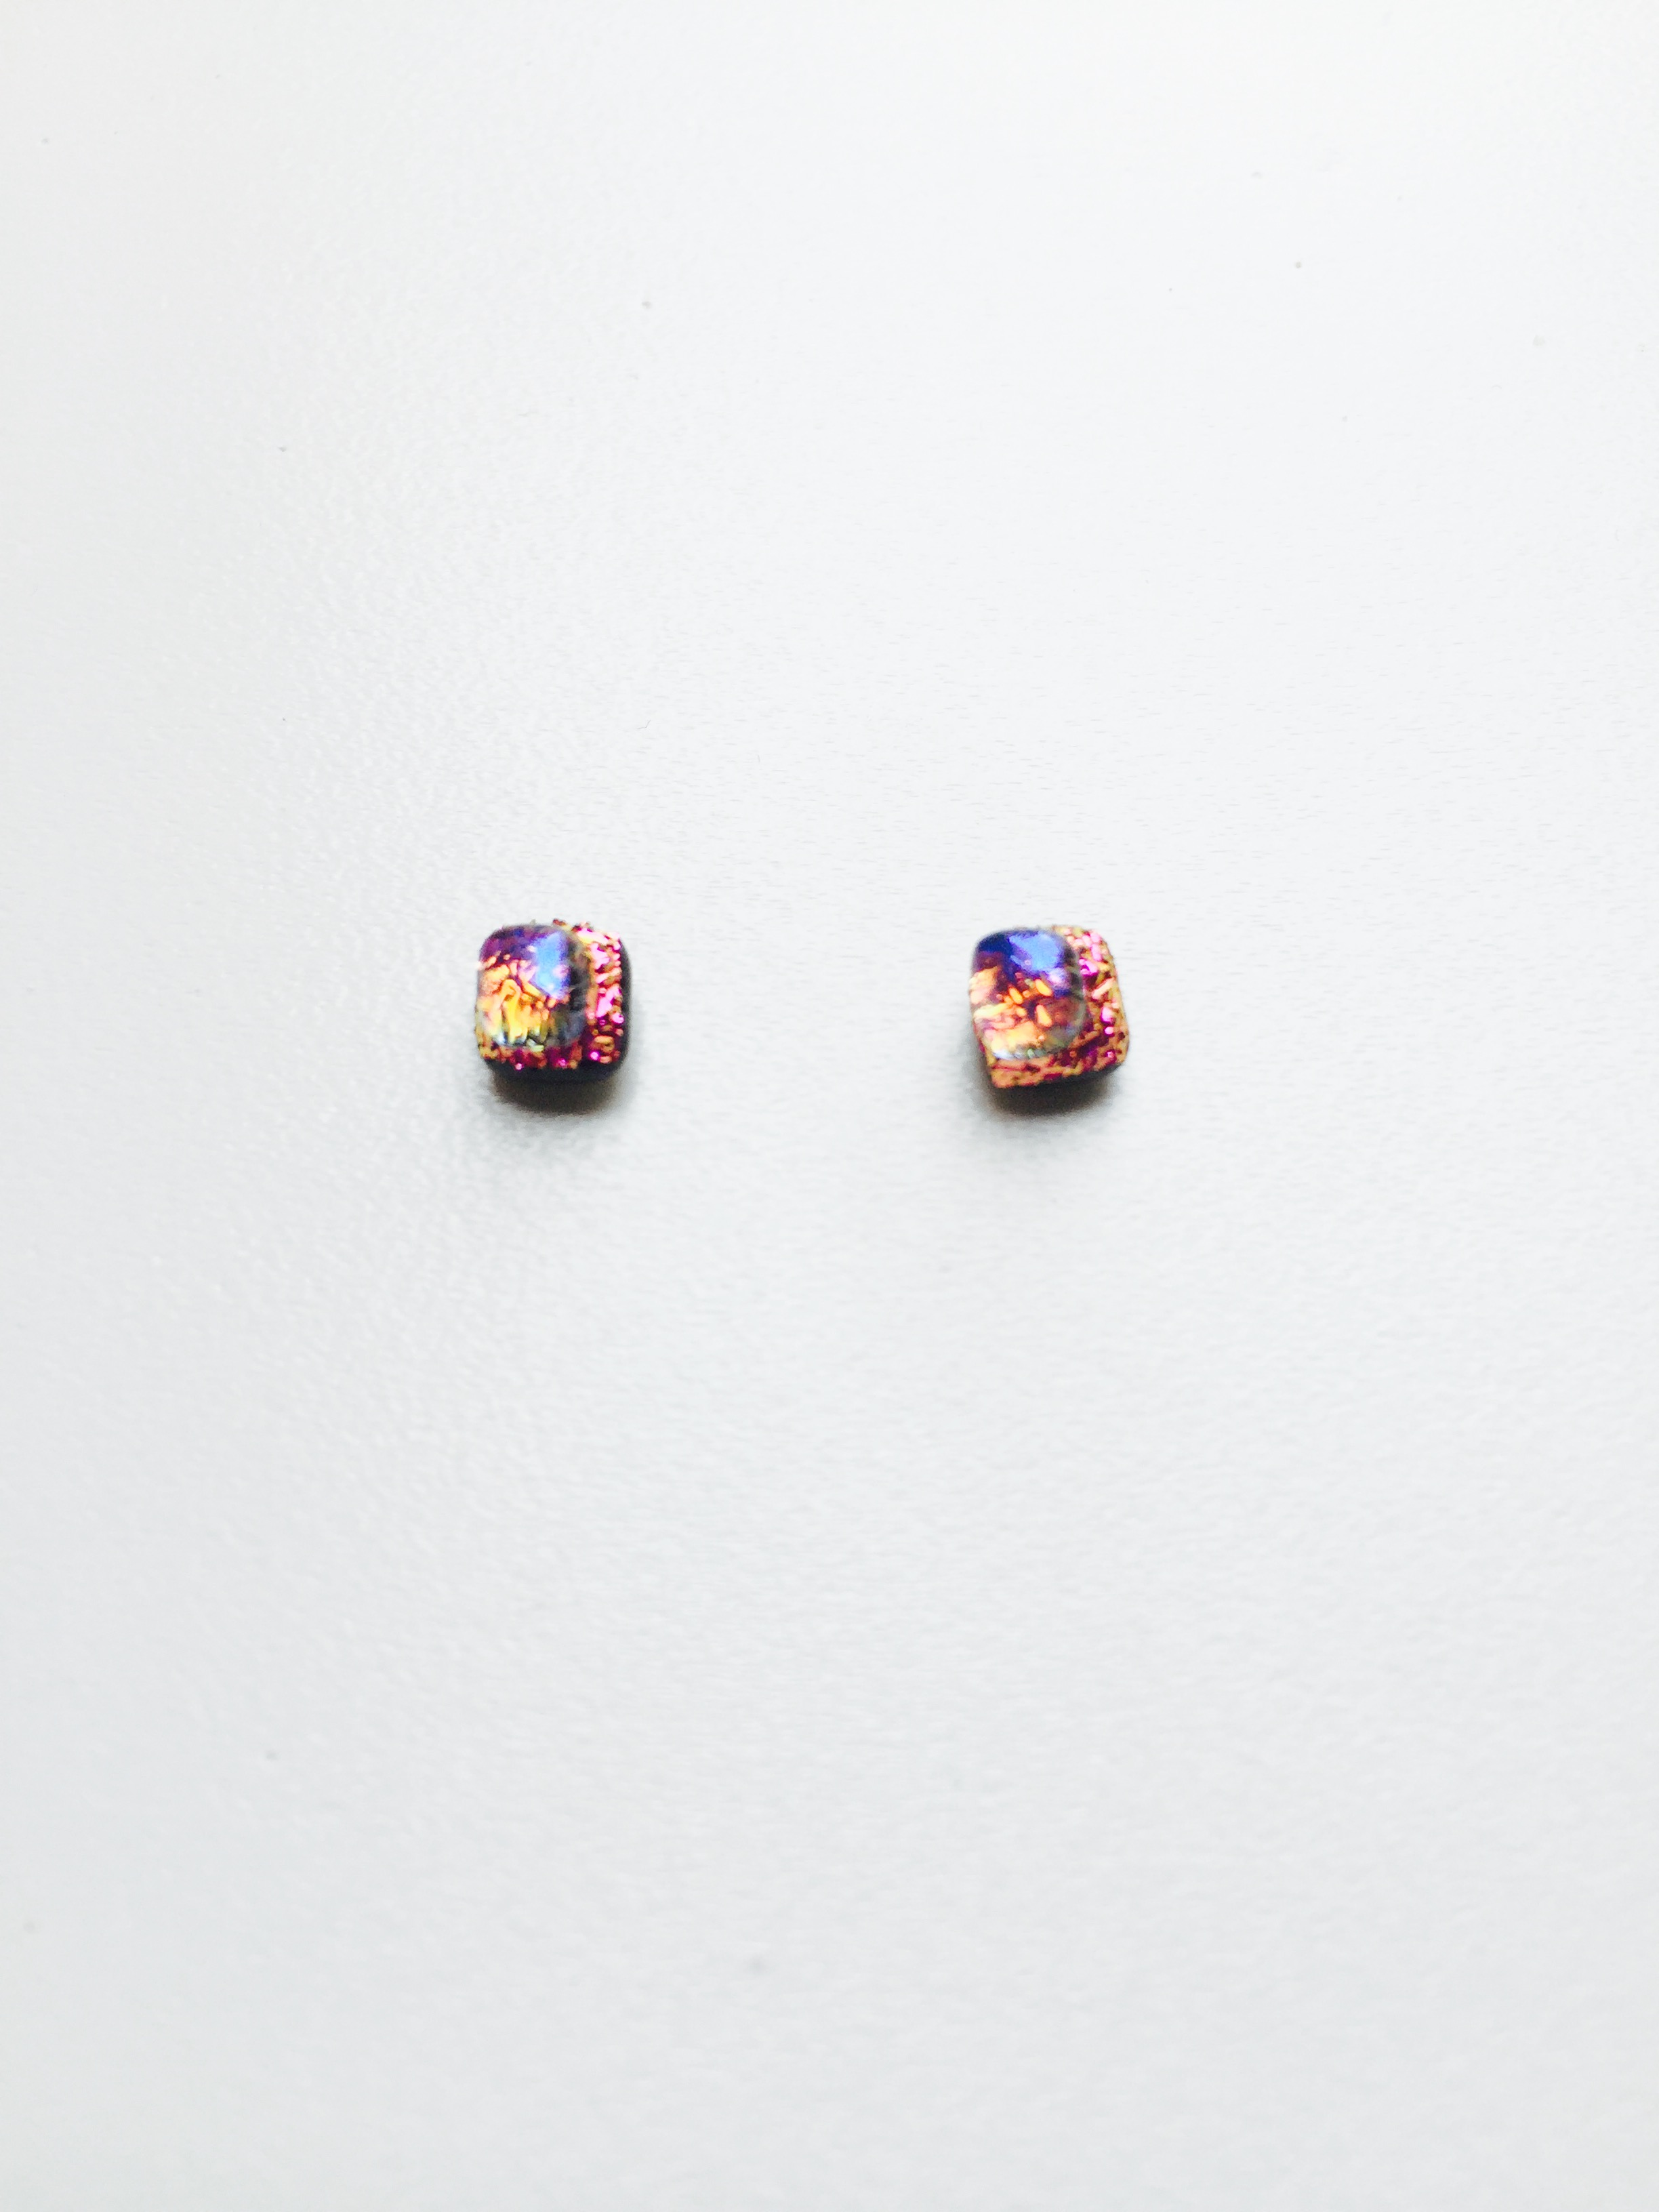 pin eventurine pinterest fused earrings glass stud blue